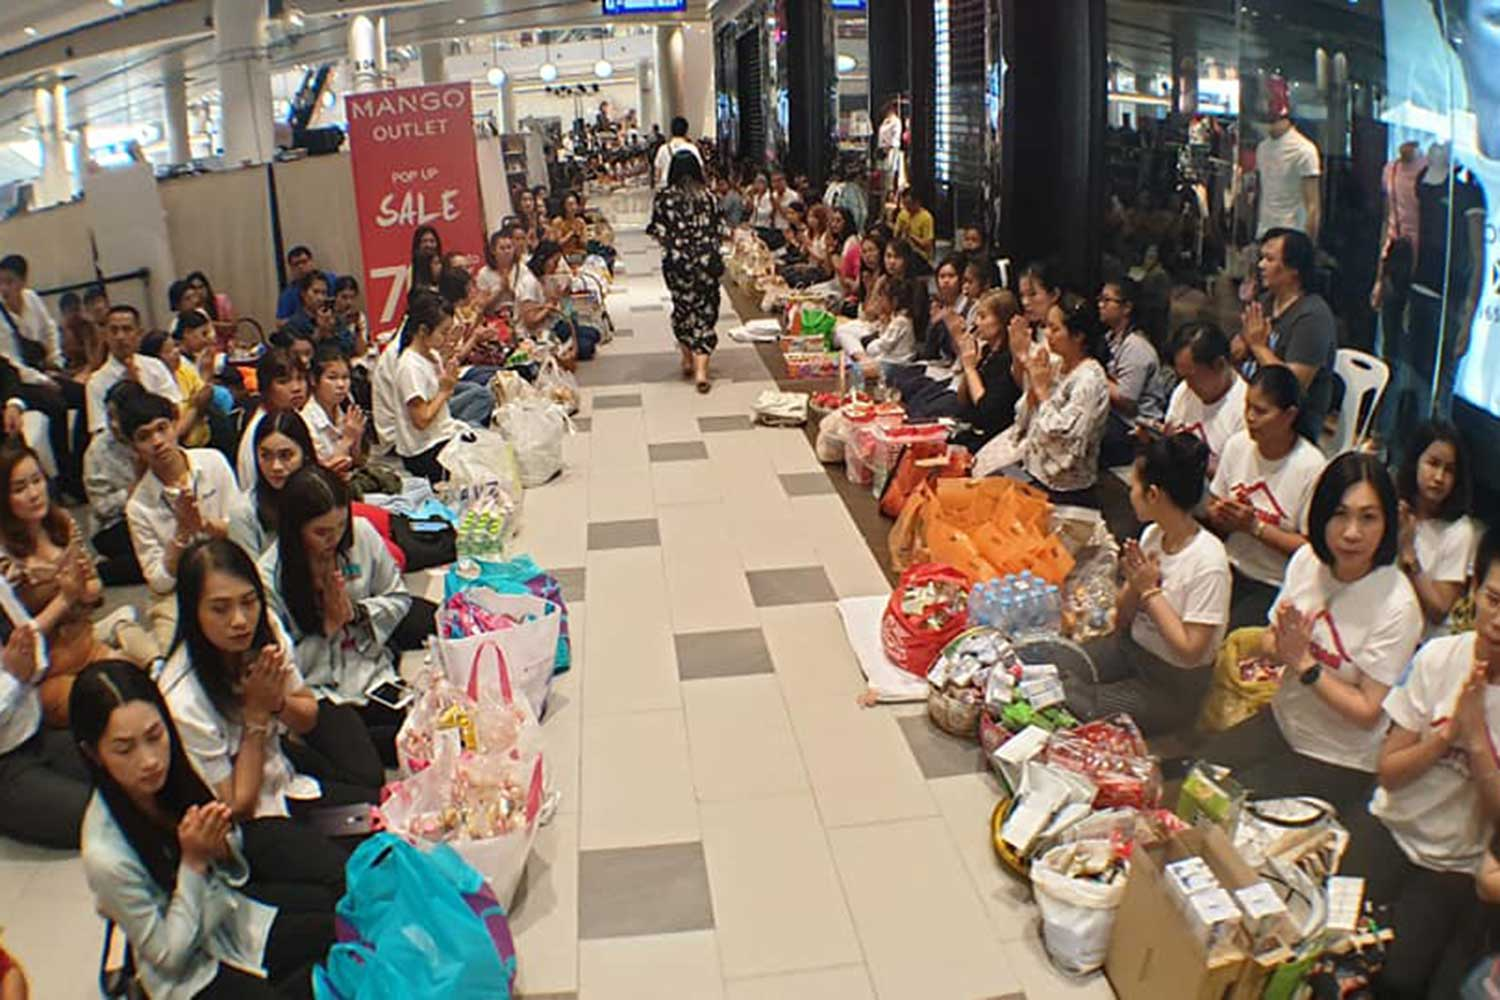 People gather at Terminal 21 in Muang district of Nakhon Ratchasima to make merit as the shopping centre reopened for business on Thursday after it was shut down during a shooting rampage that claimed 30 lives, including the mass-shooter, and left 58 people wounded. (Photo by Prasit Tangprasert)